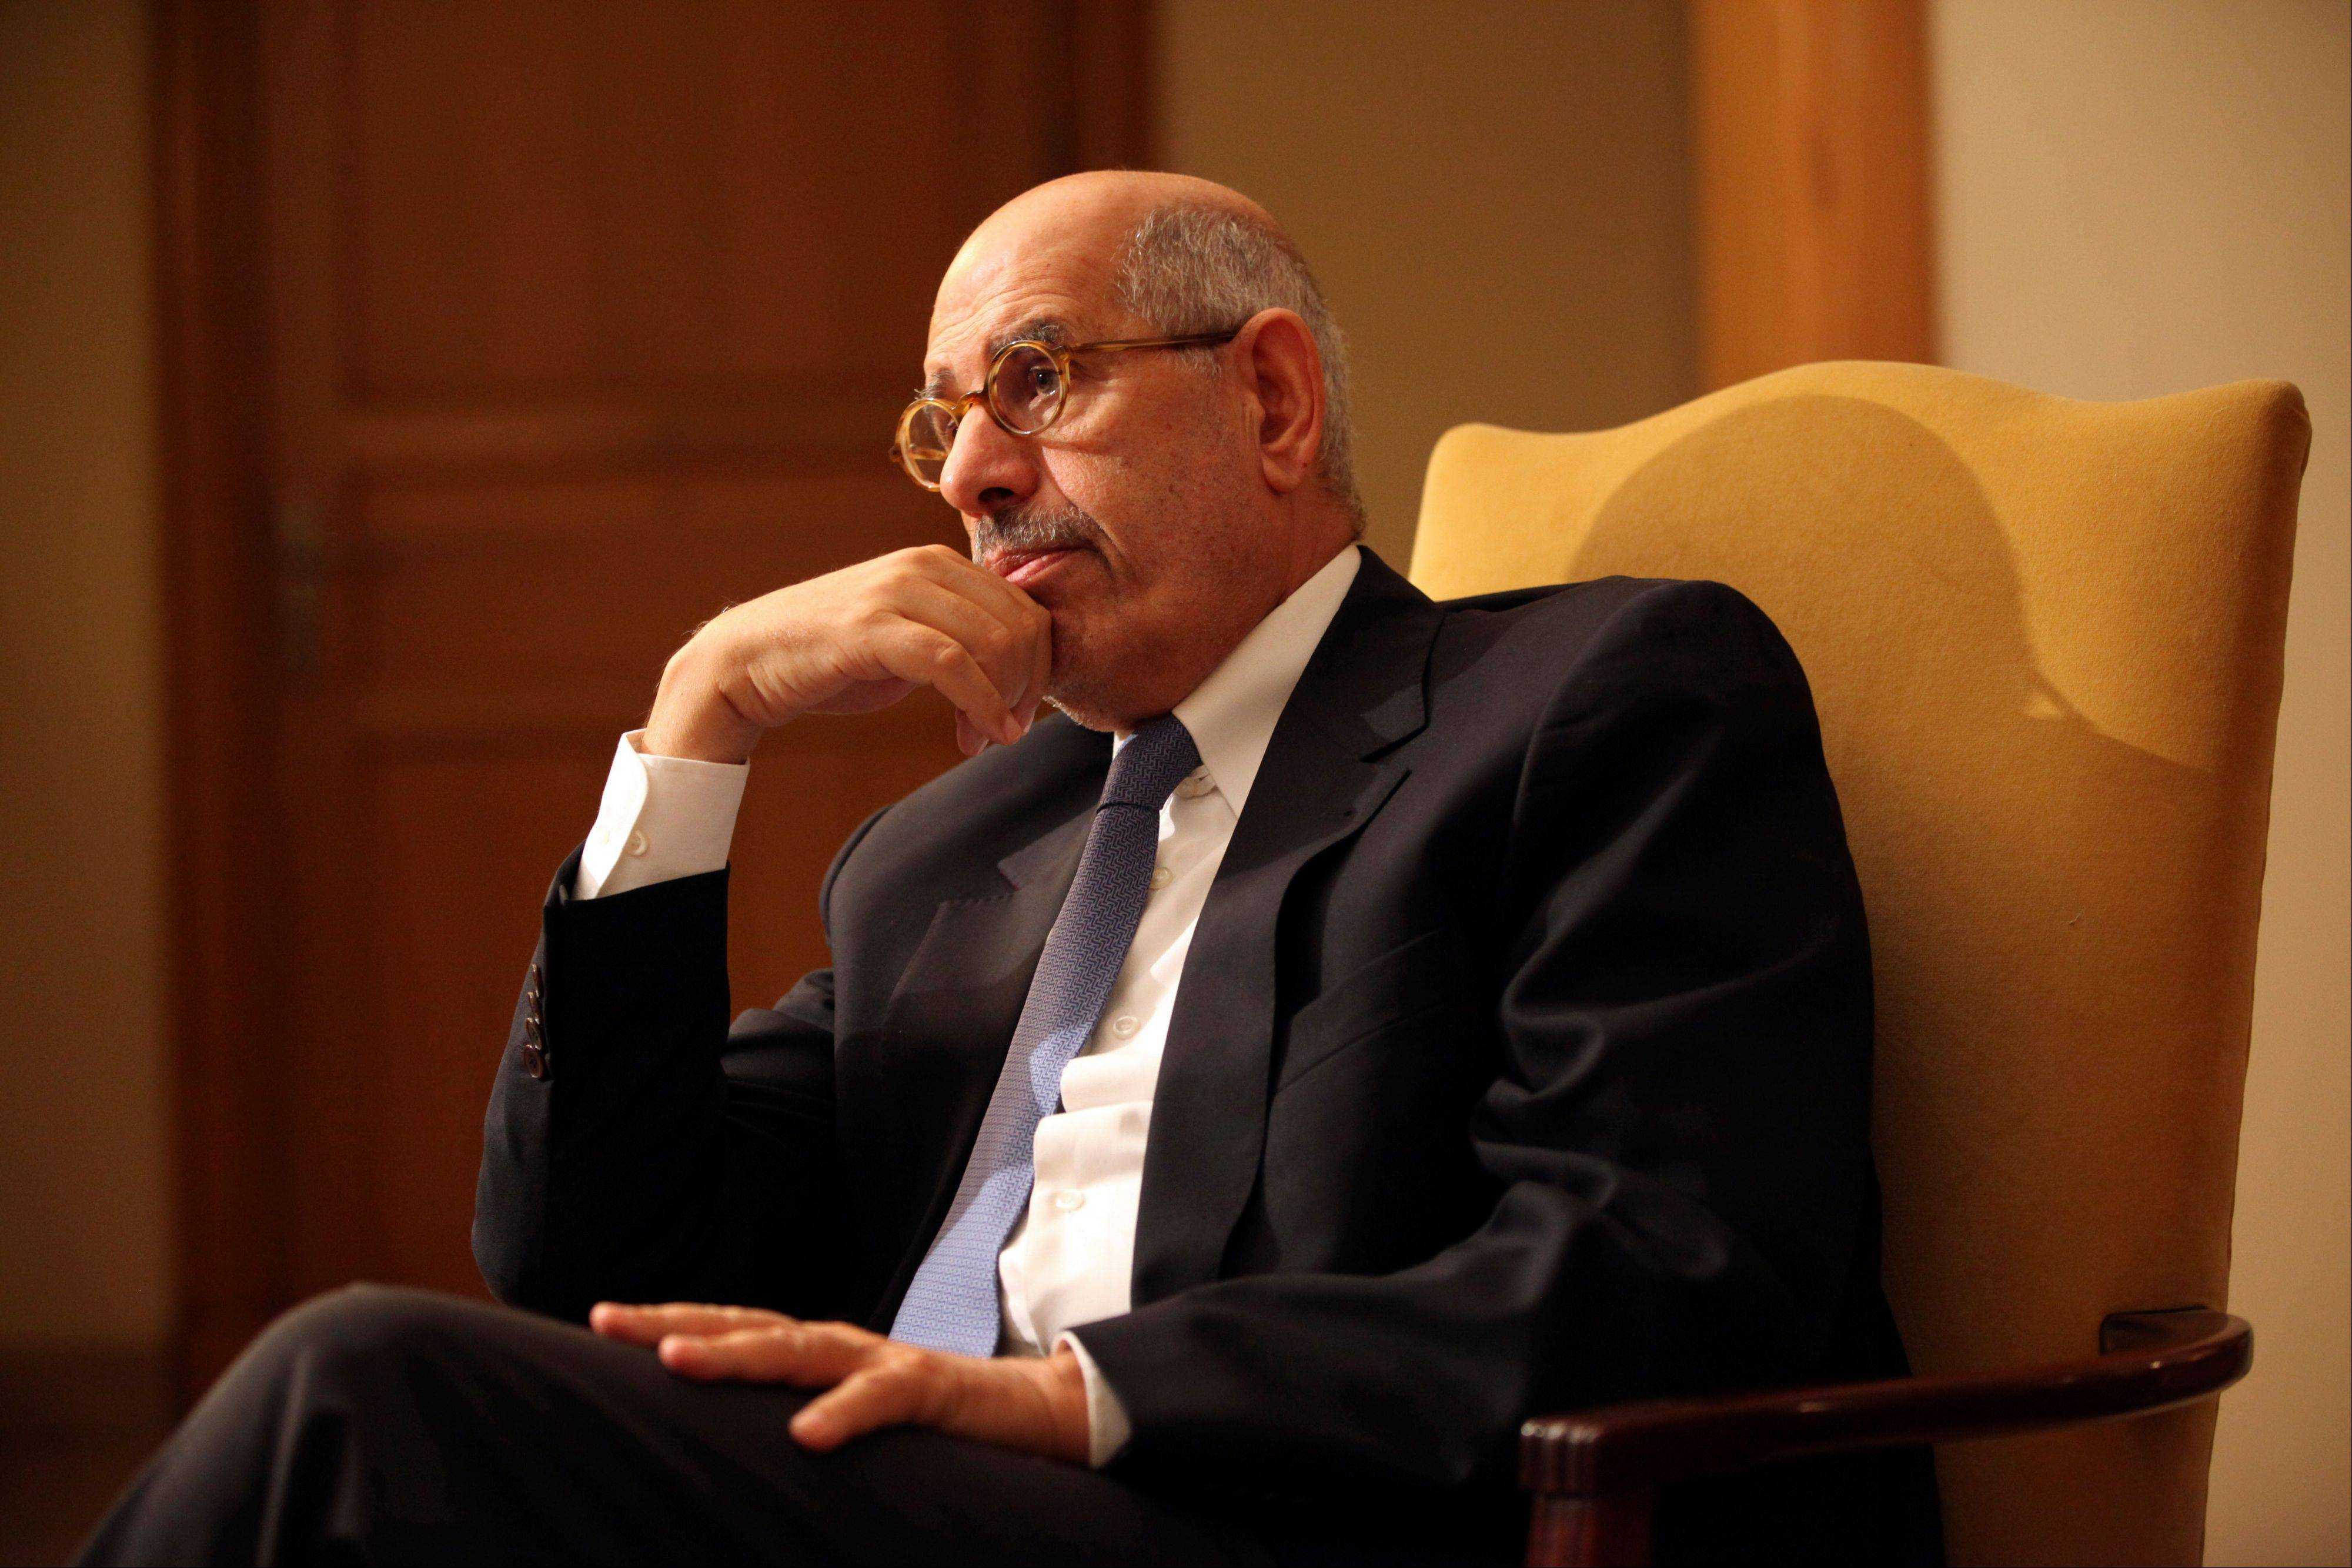 Leading democracy advocate Mohammed ElBaradei speaks Saturday to a handful of journalists, saying dialogue with Egypt�s Islamist president is not possible until he rescinds his decrees giving himself near absolute powers, at his home on the outskirts of Cairo, Egypt.